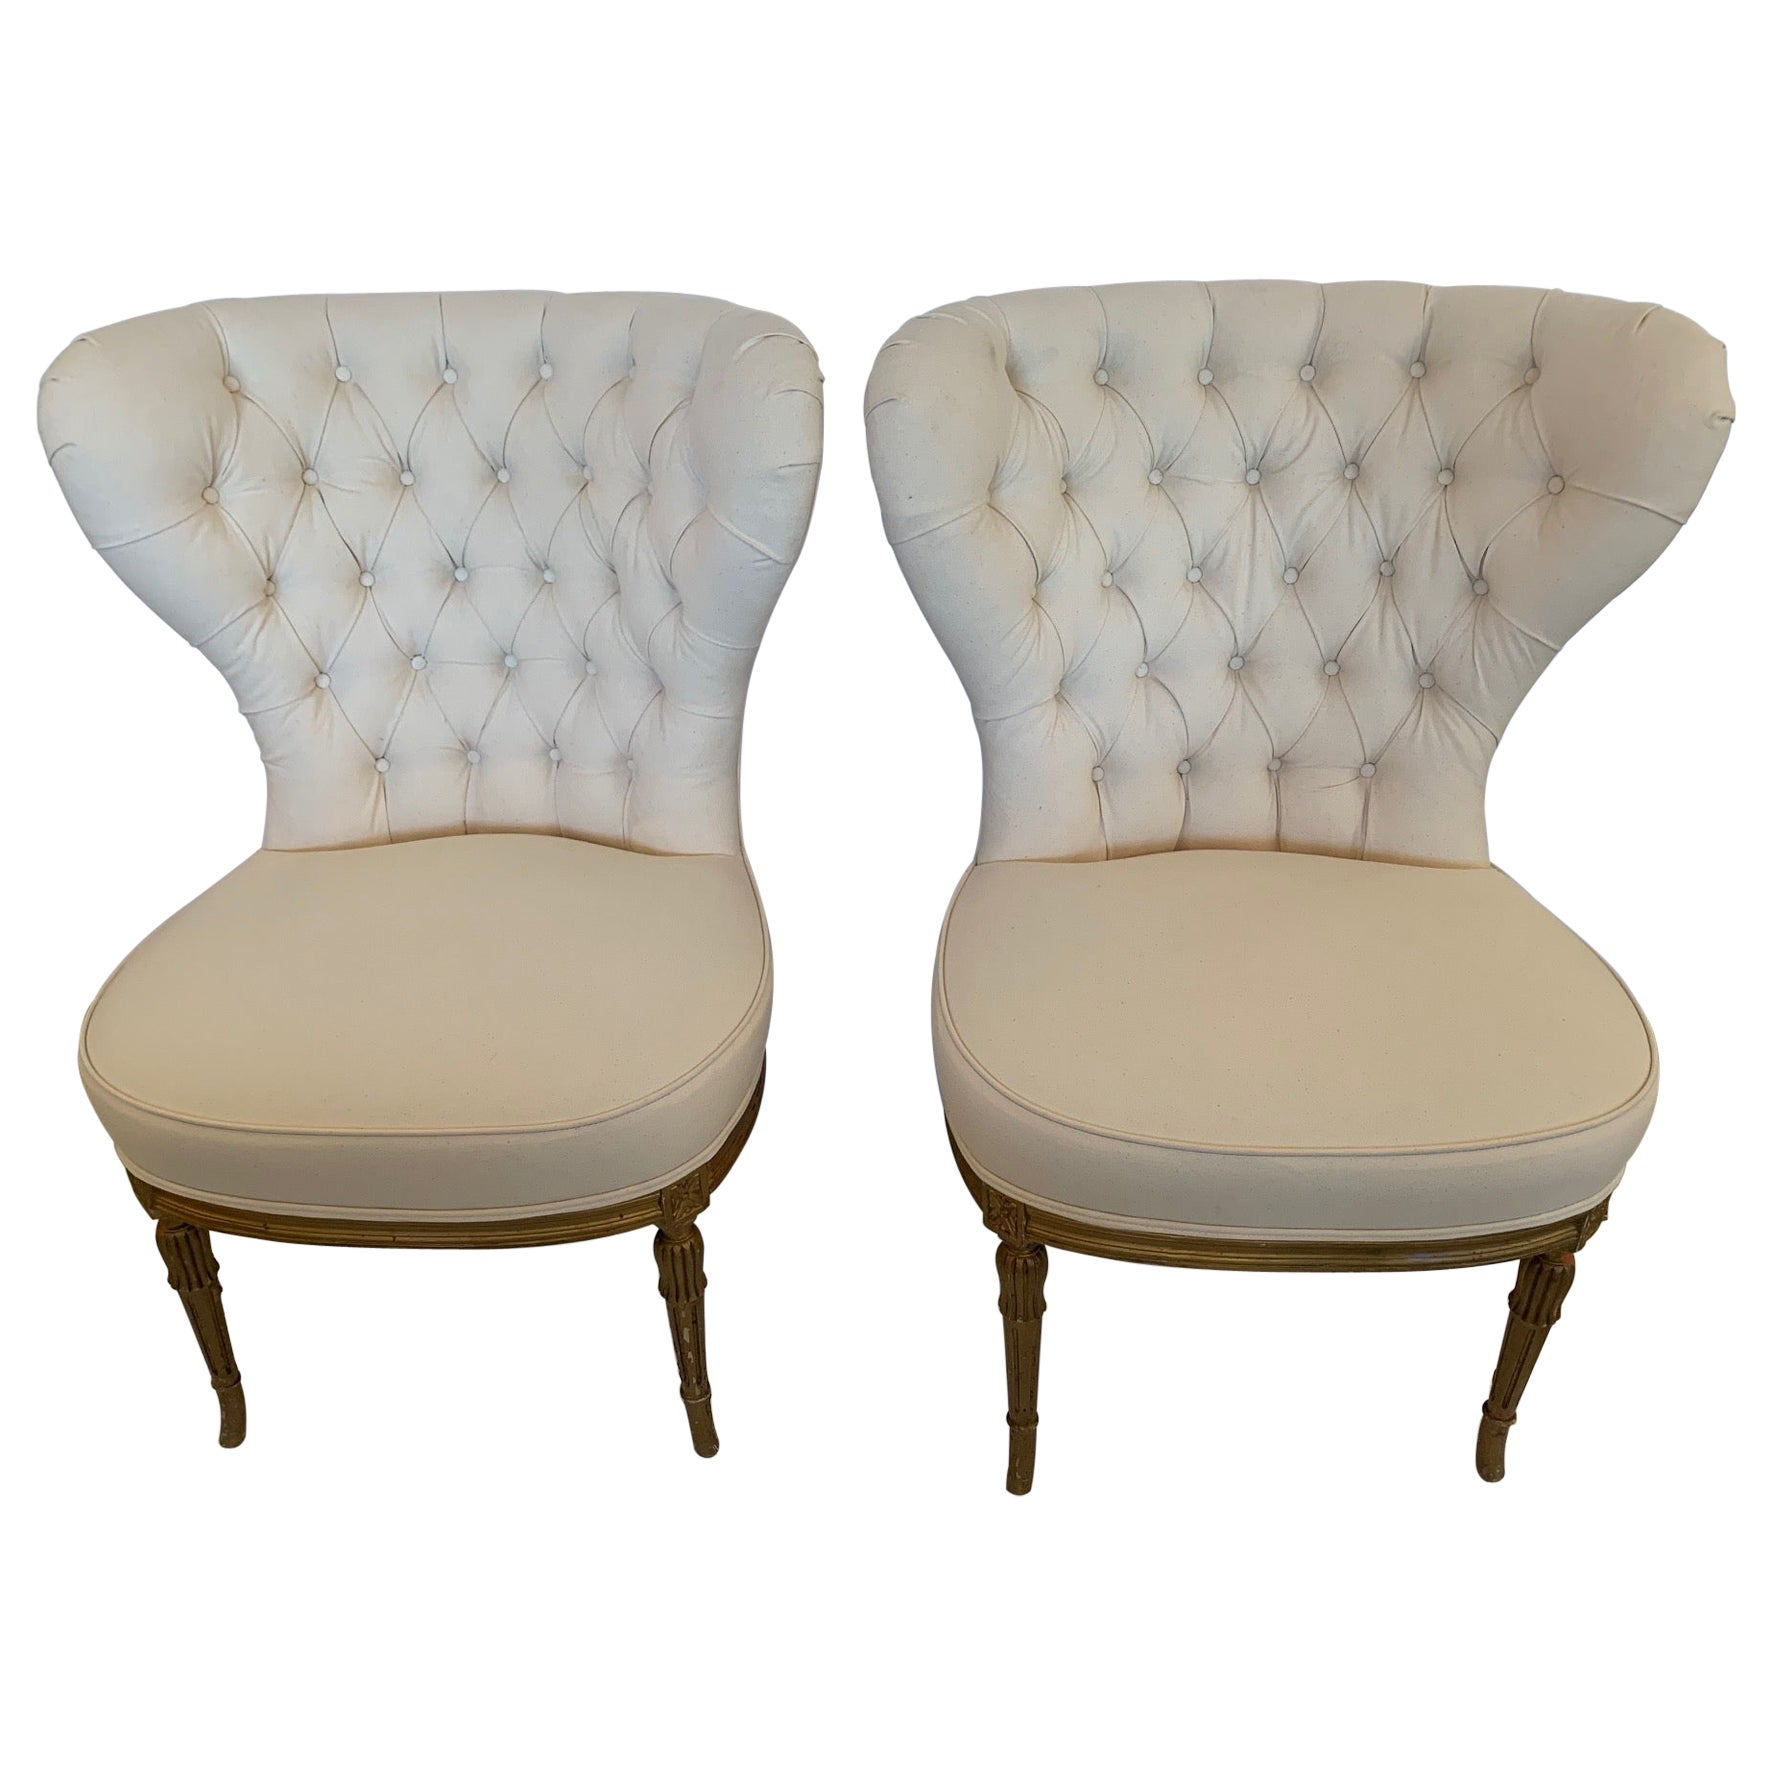 Dramatic 19th Century Newly Upholstered Tufted Fan Back Slipper Chairs